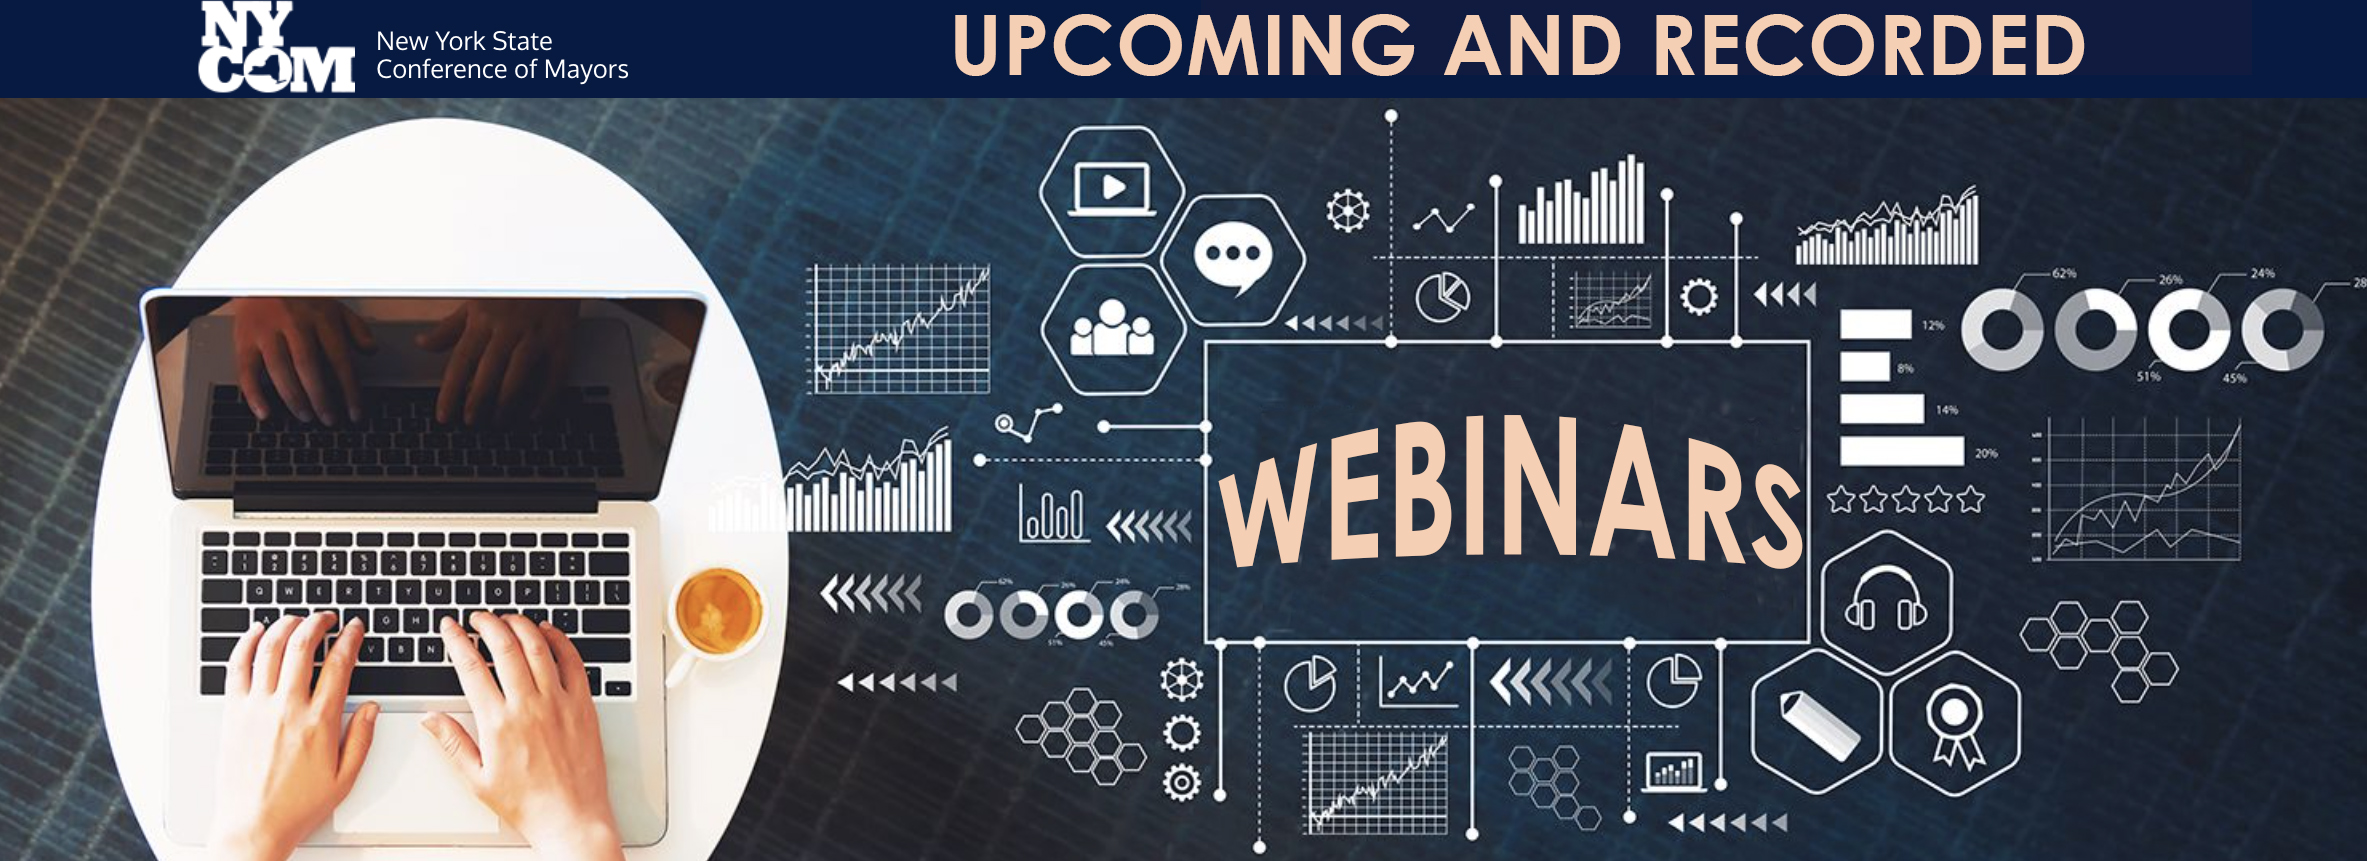 VIEW AVAILABLE WEBINARS